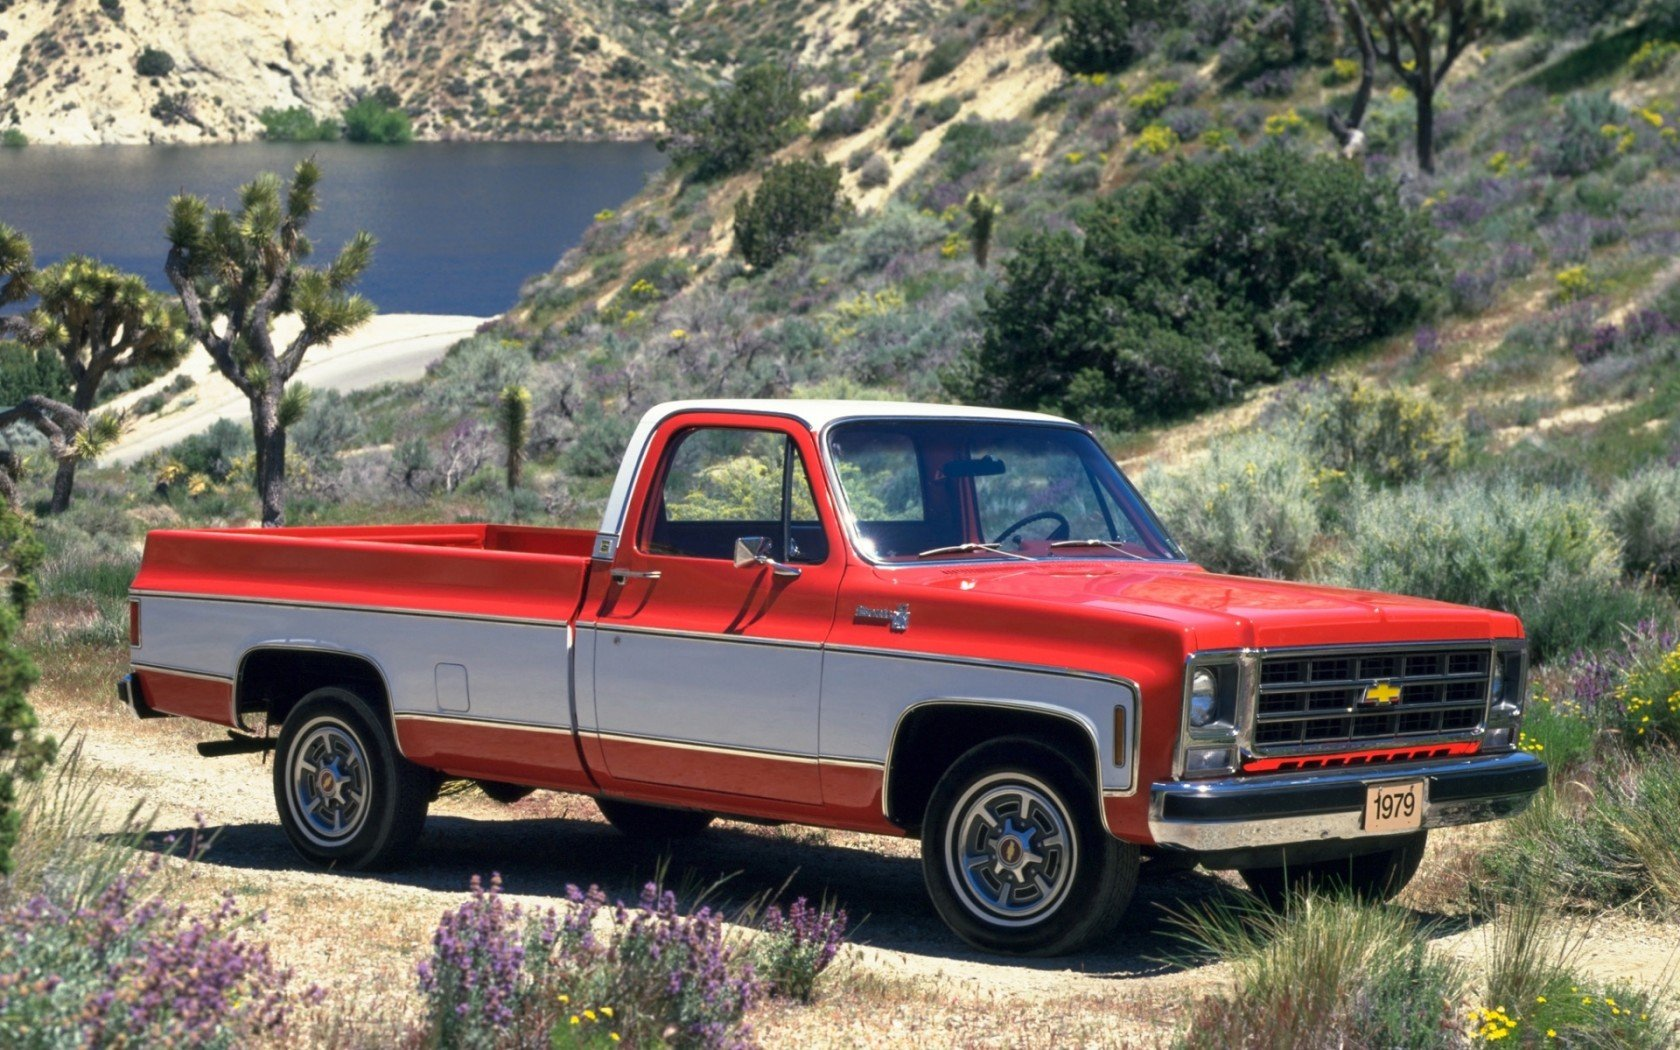 Old Chevy Truck Wallpapers - WallpaperSafari